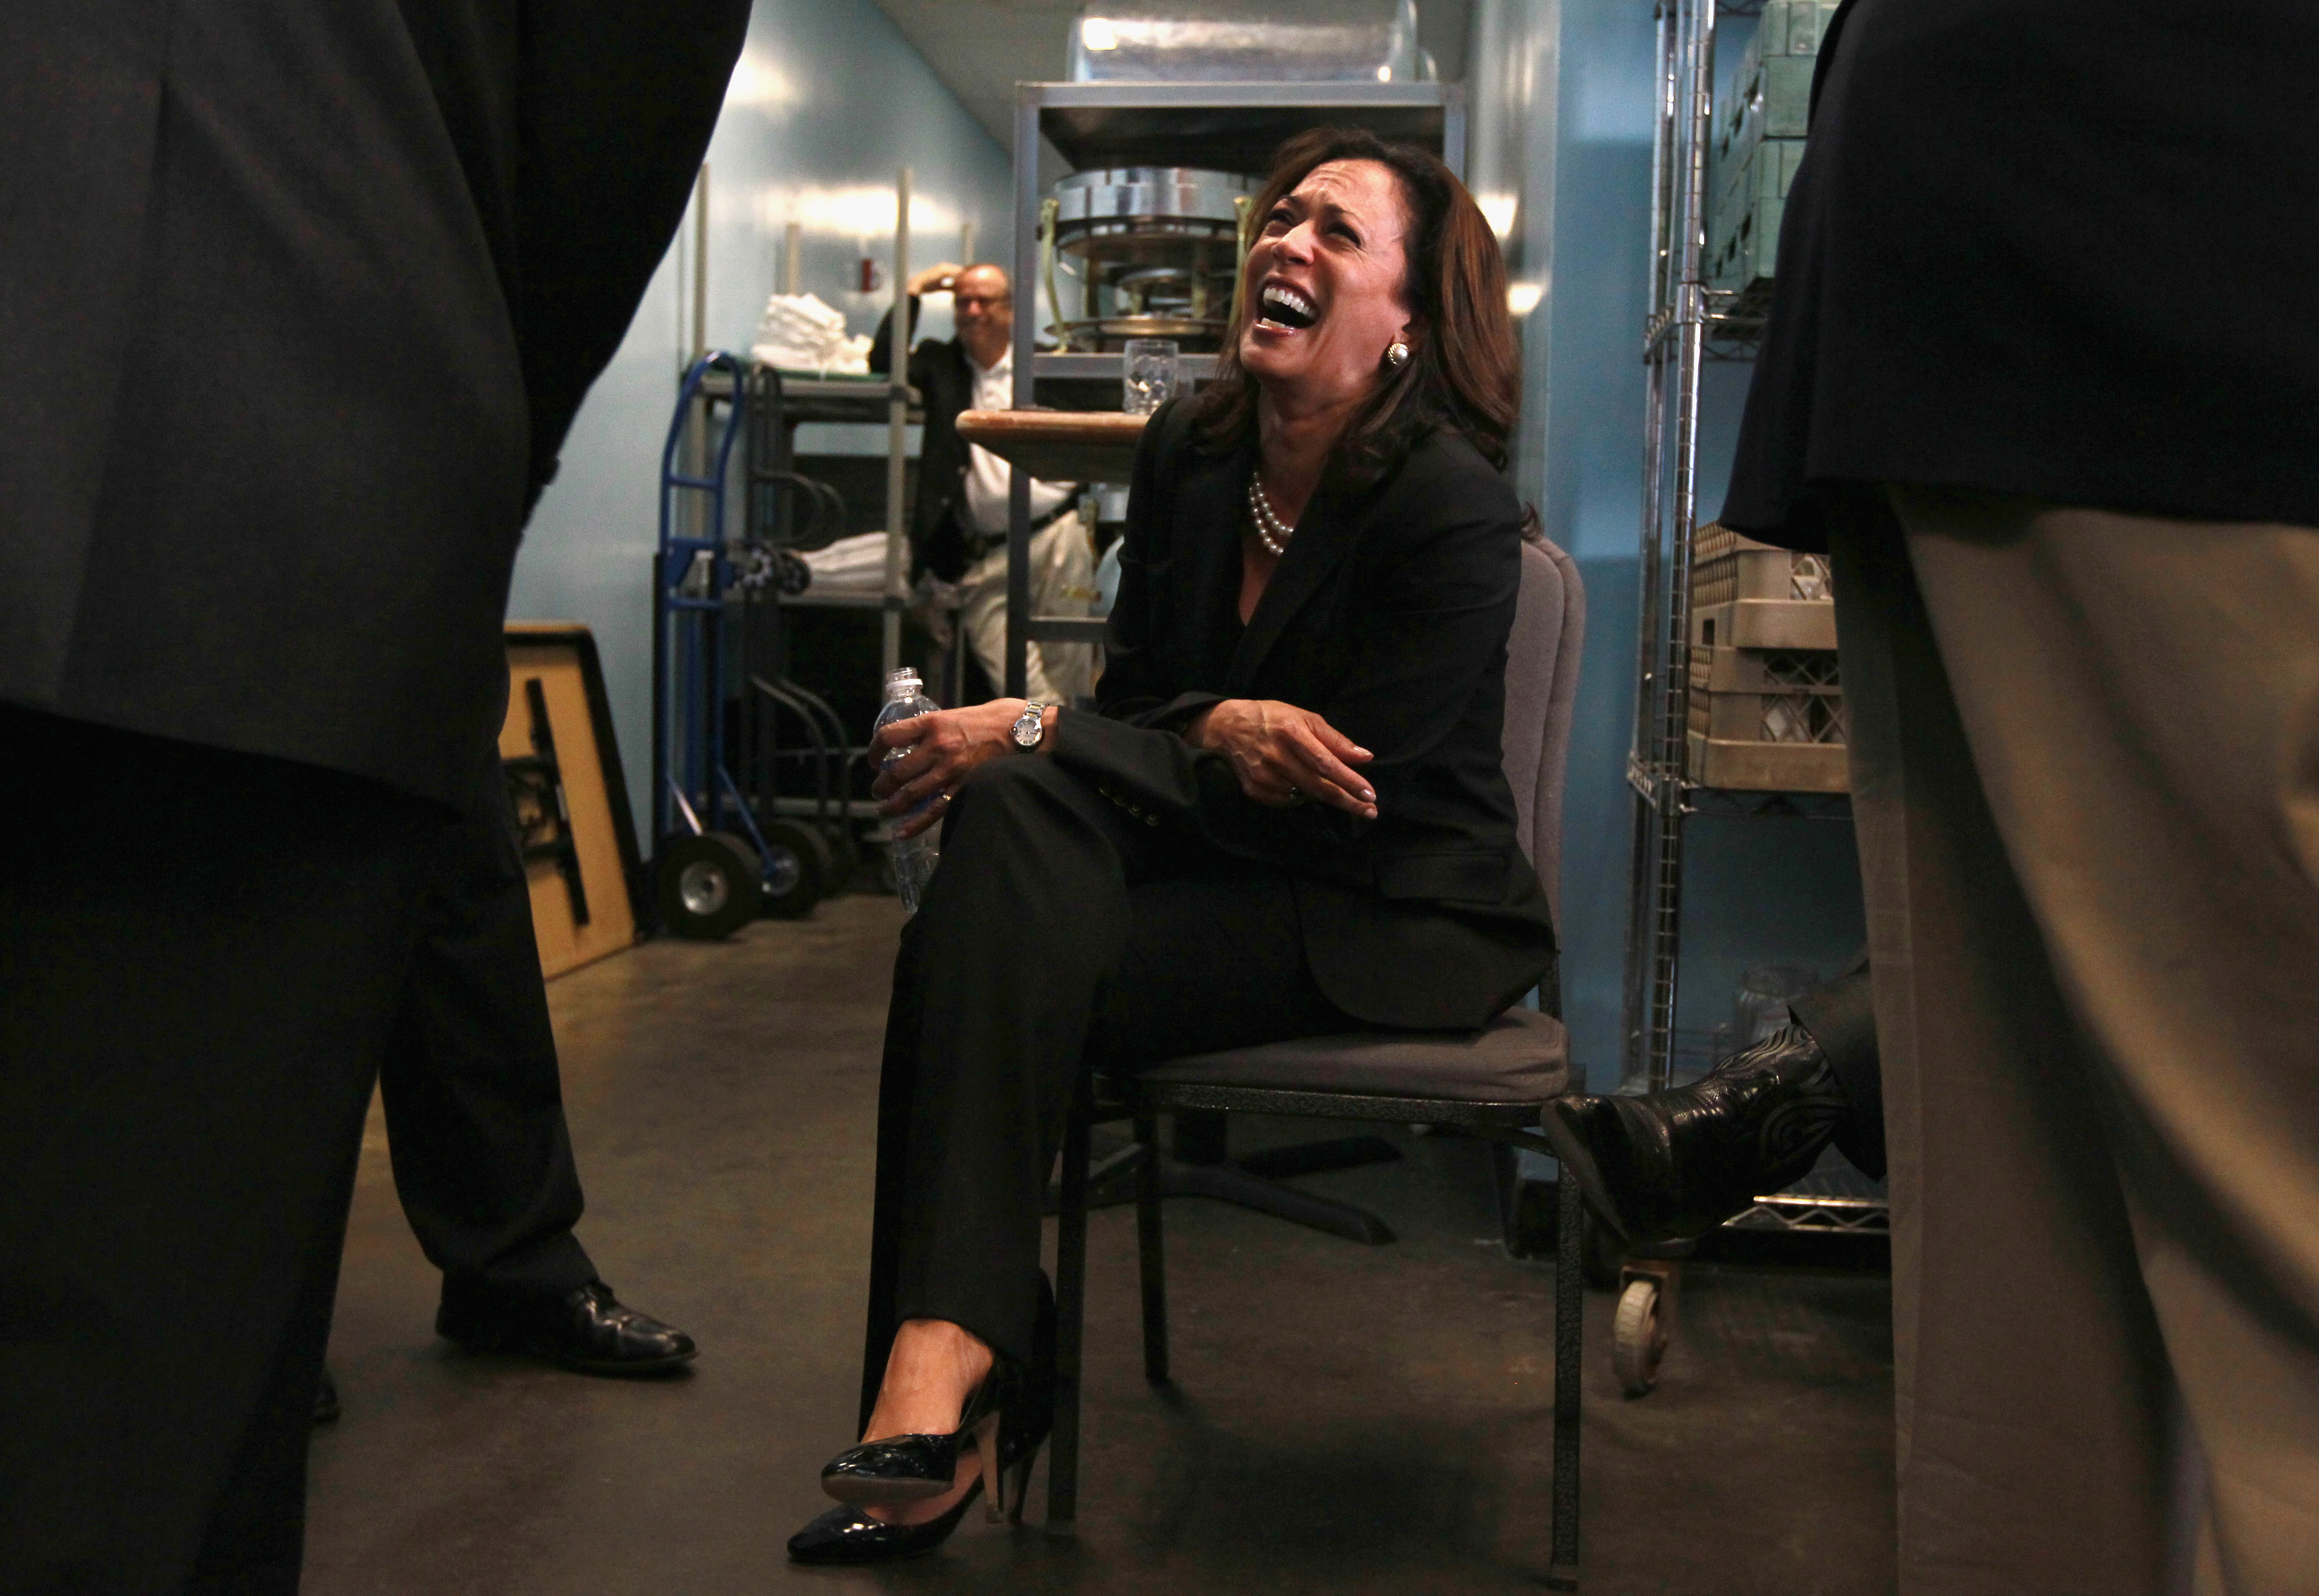 San Francisco district attorney and democratic candidate for California attorney general Kamala Harris laughs as she sits backstage before a get-out-the-vote rally at the National Steinbeck Center on November 1, 2010 in Salinas, California. (Getty Images)